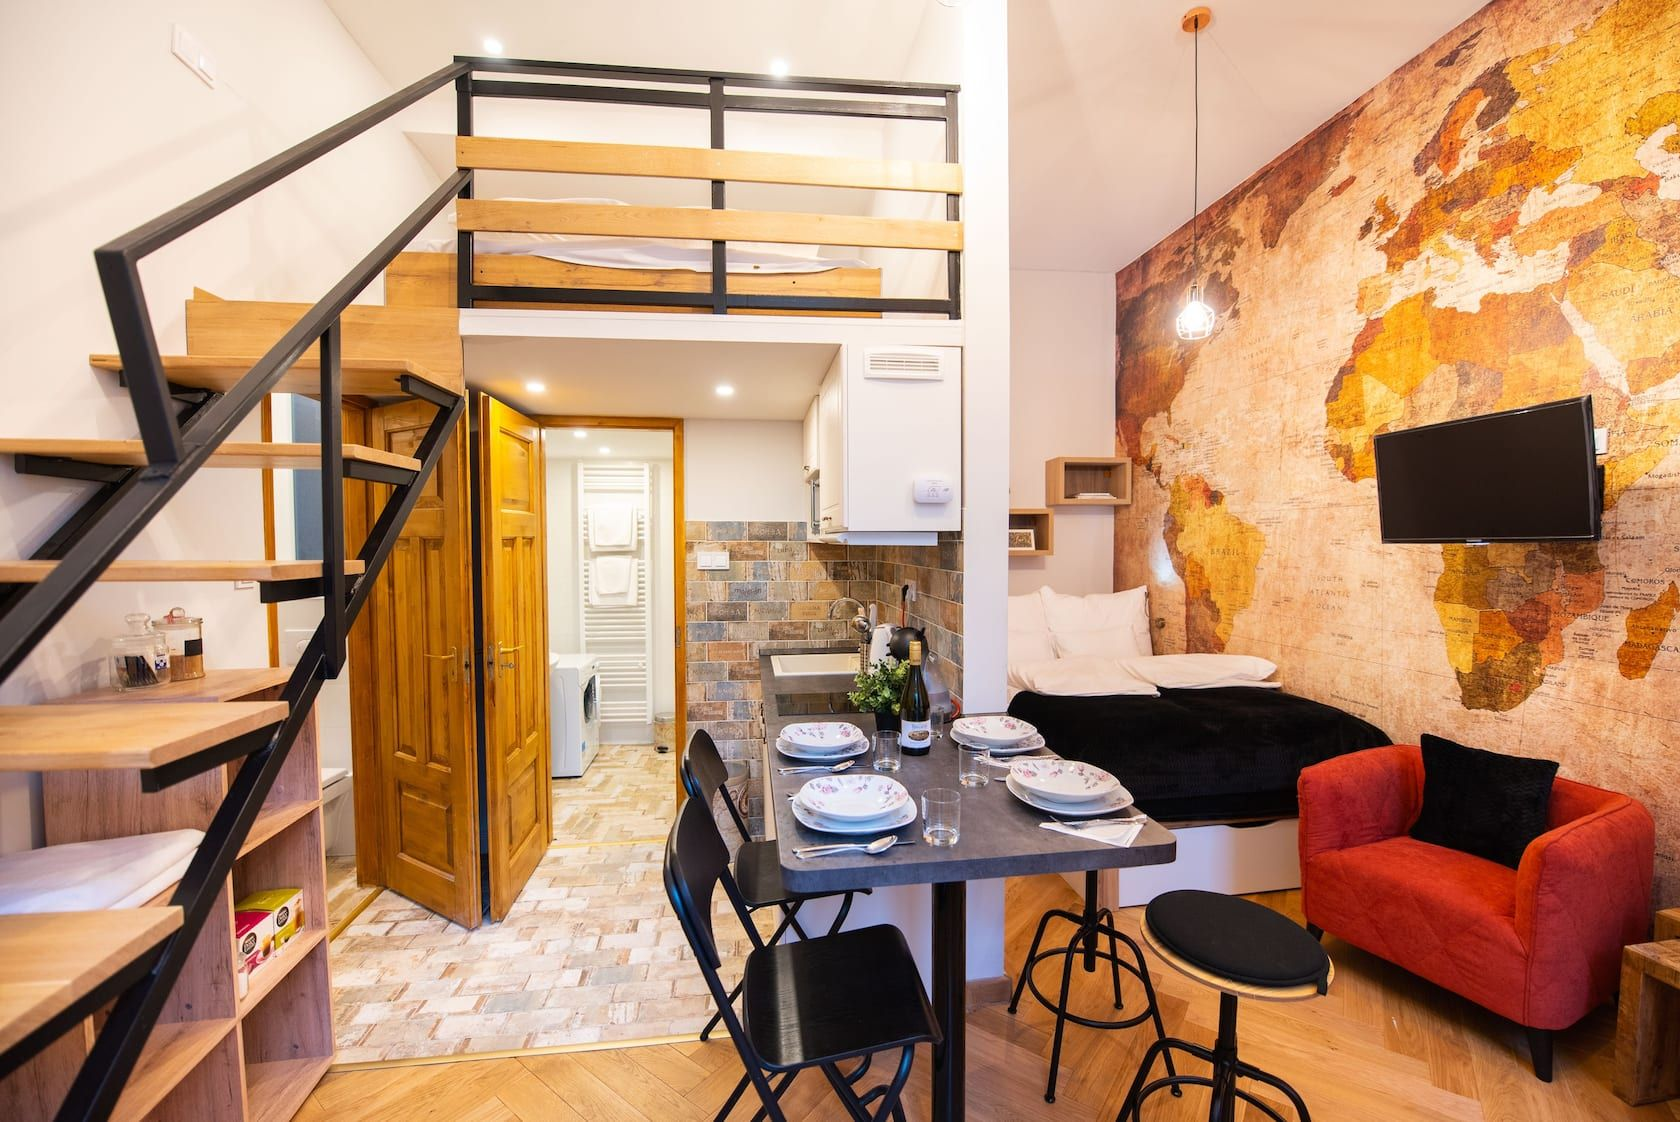 King David Studio With A C Apartments For Rent In Budapest Hungary Apartments For Rent Modern Apartment House Beds